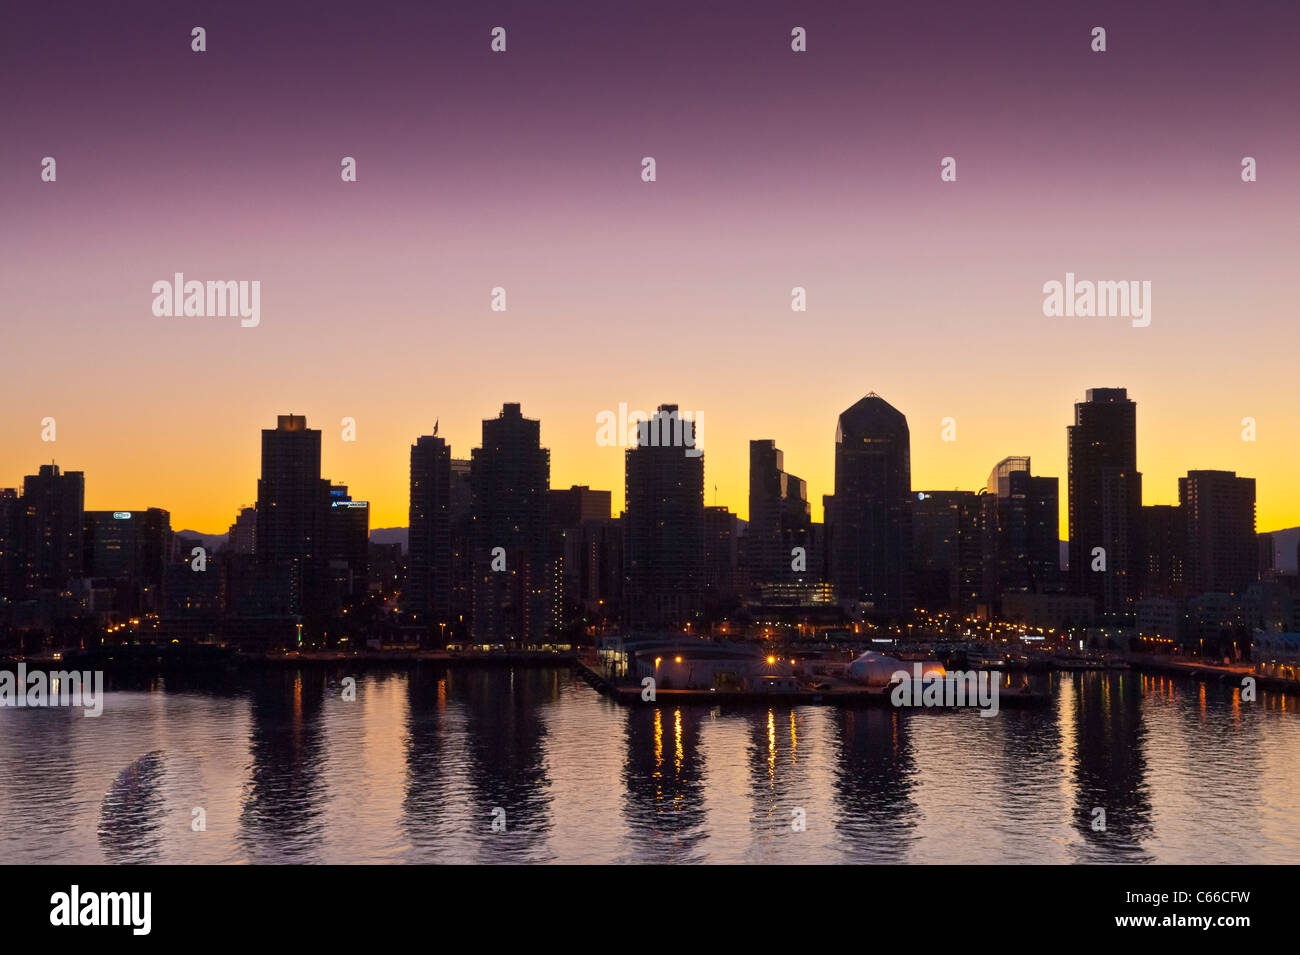 San Diego is the eighth-largest city in the United States and second-largest city in California. - Stock Image